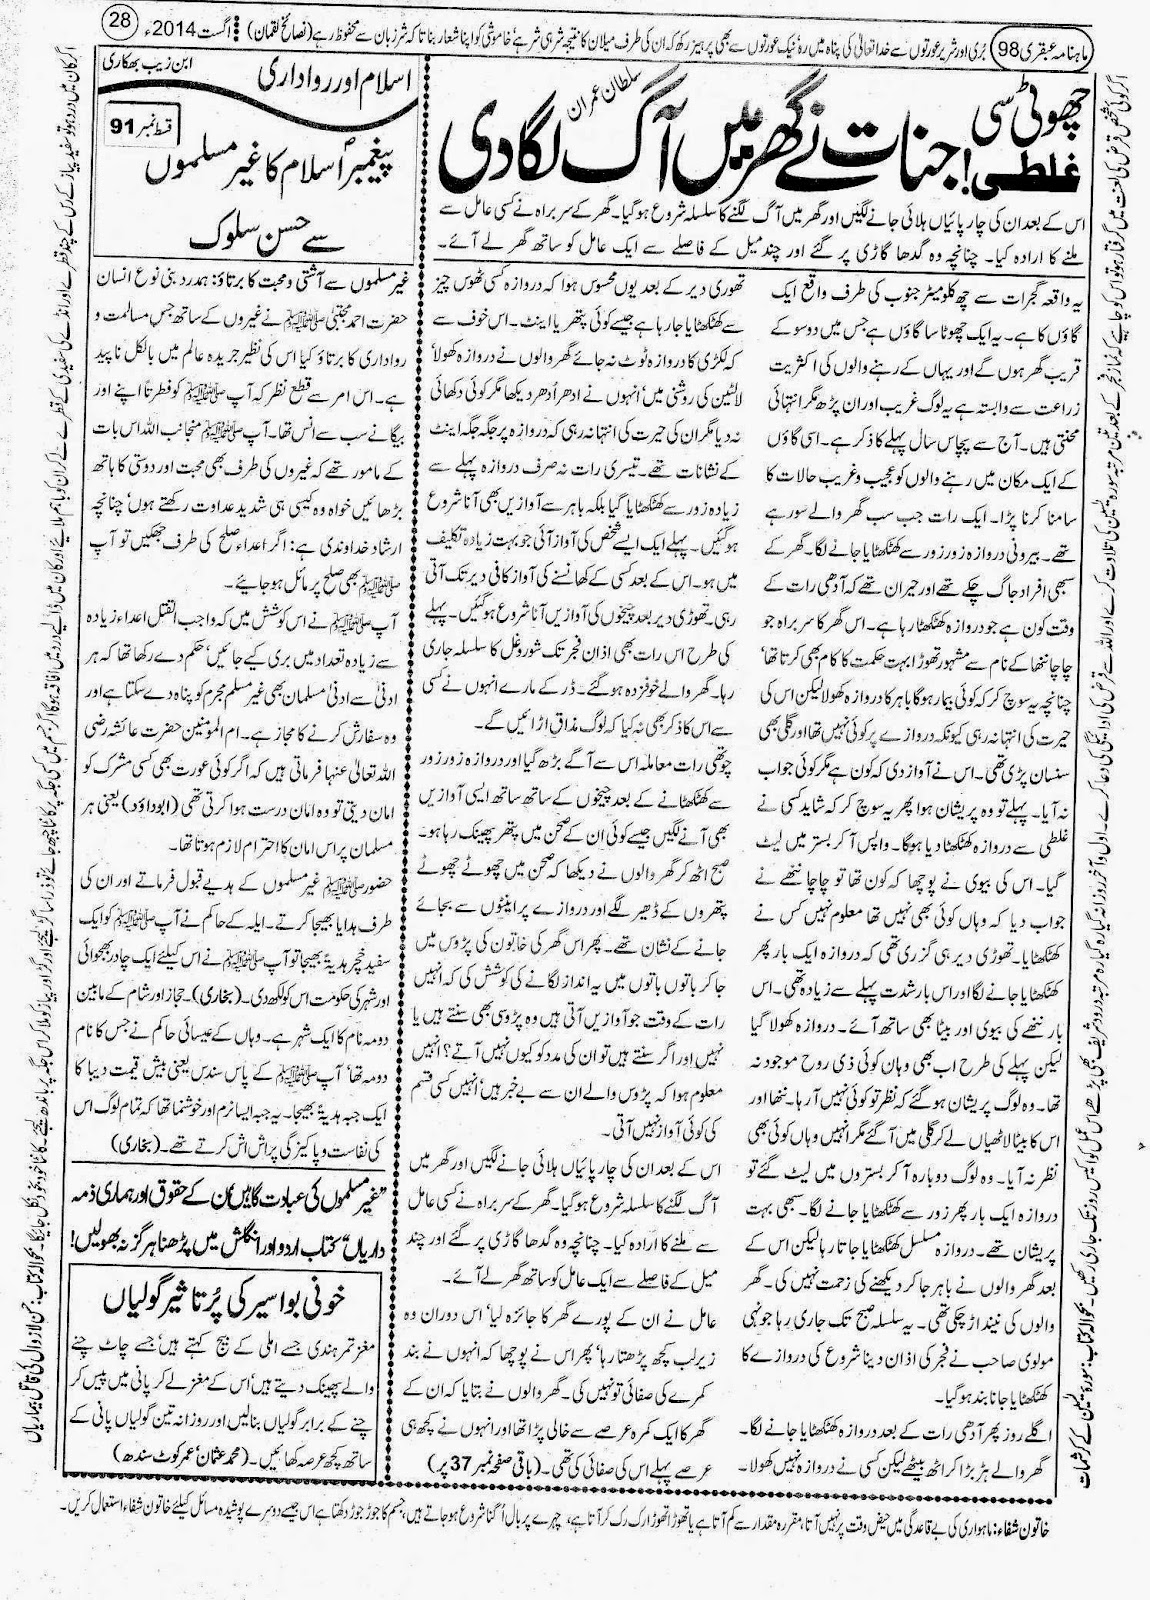 Ubqari August 2014 Page 28